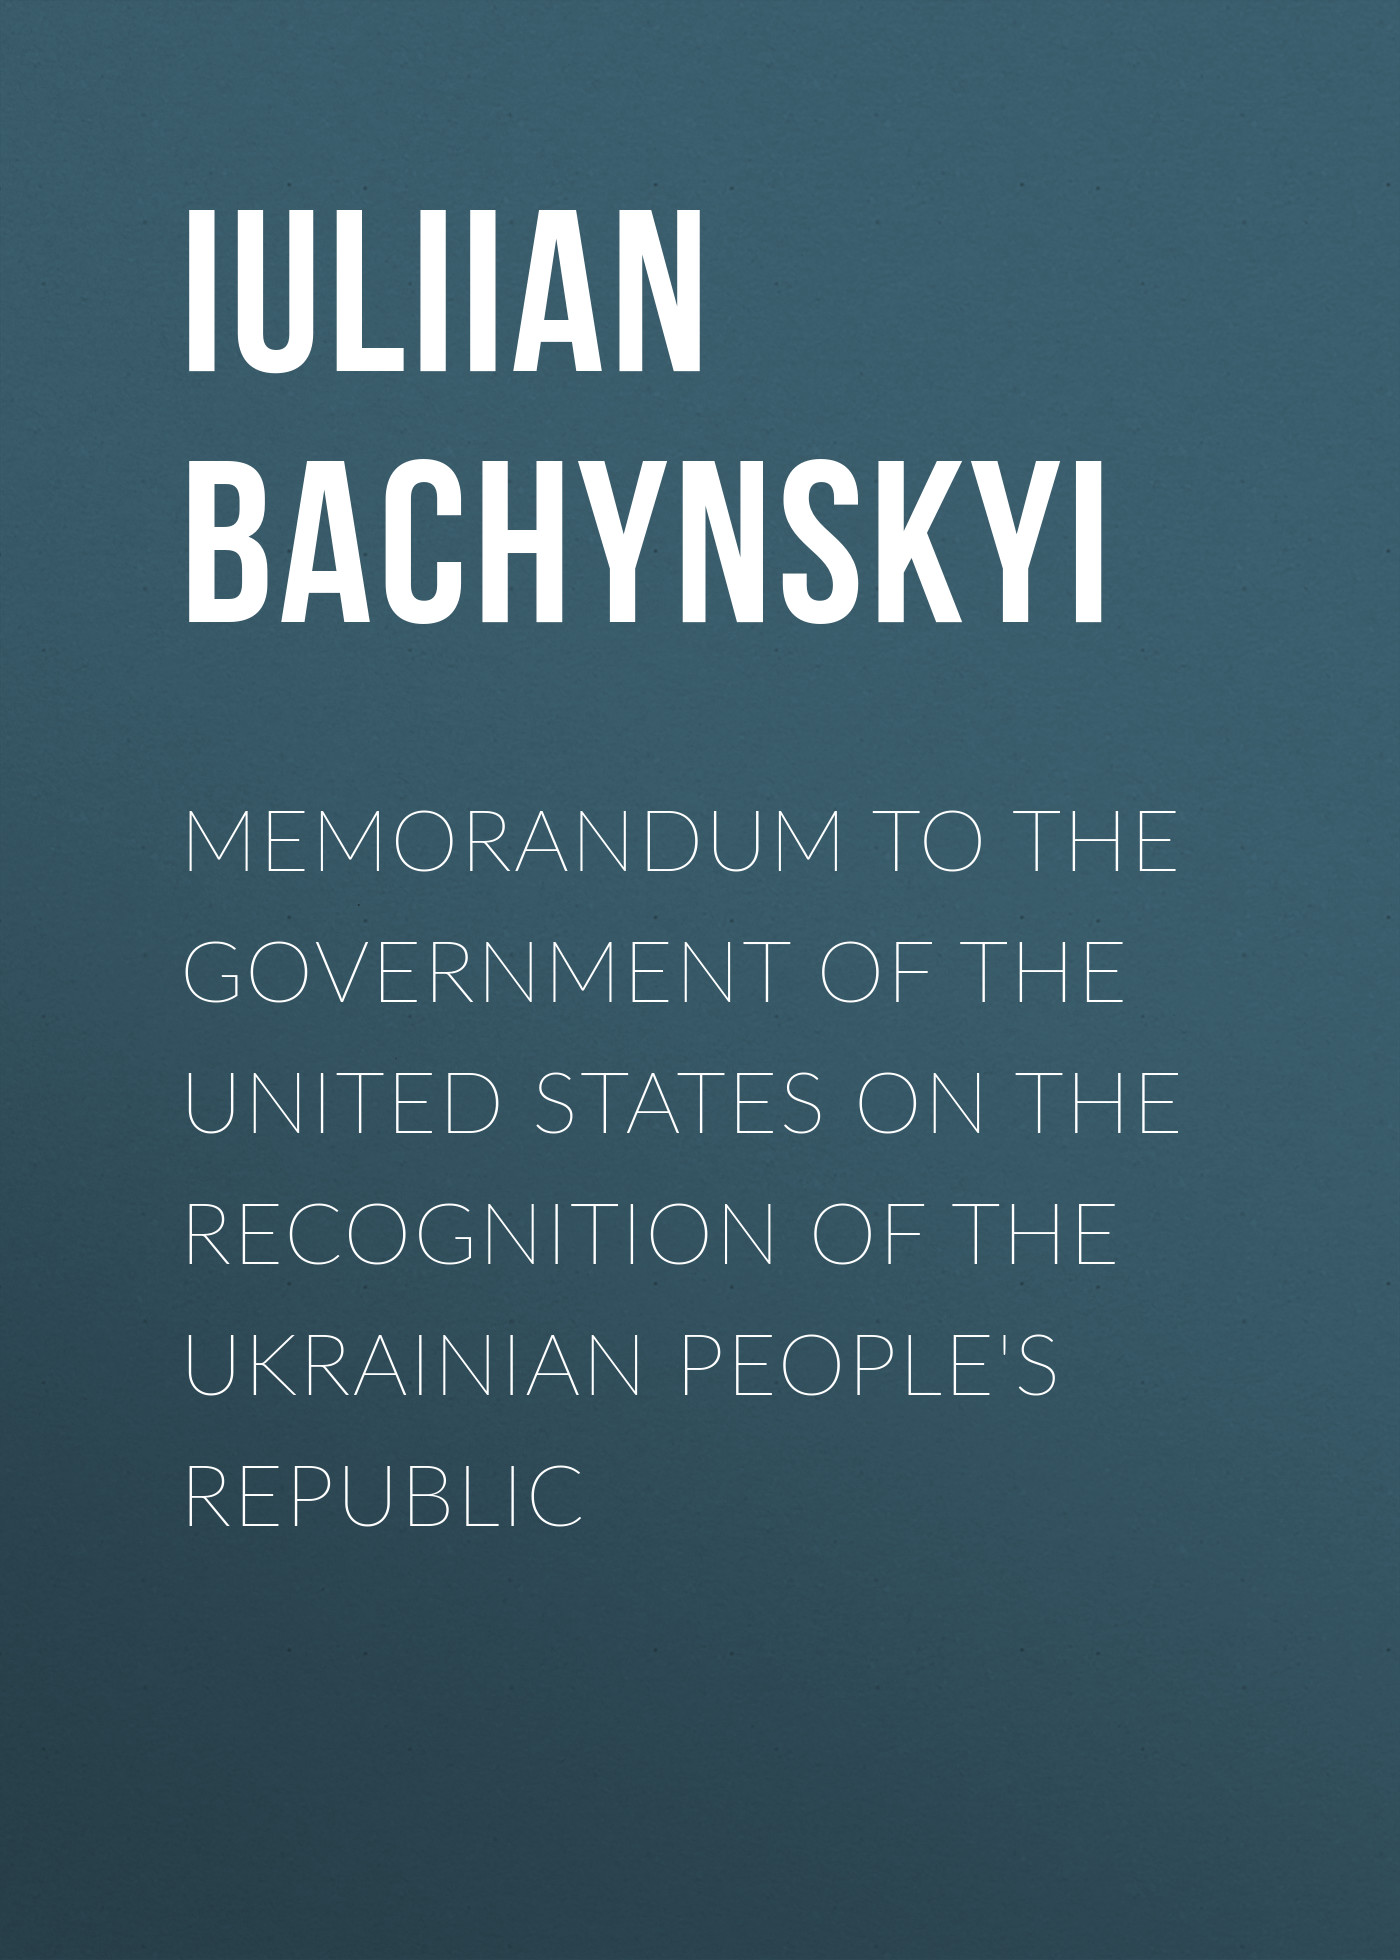 Bachynskyi IUliian Memorandum to the Government of the United States on the Recognition of the Ukrainian People's Republic шкаф для ванной the united states housing